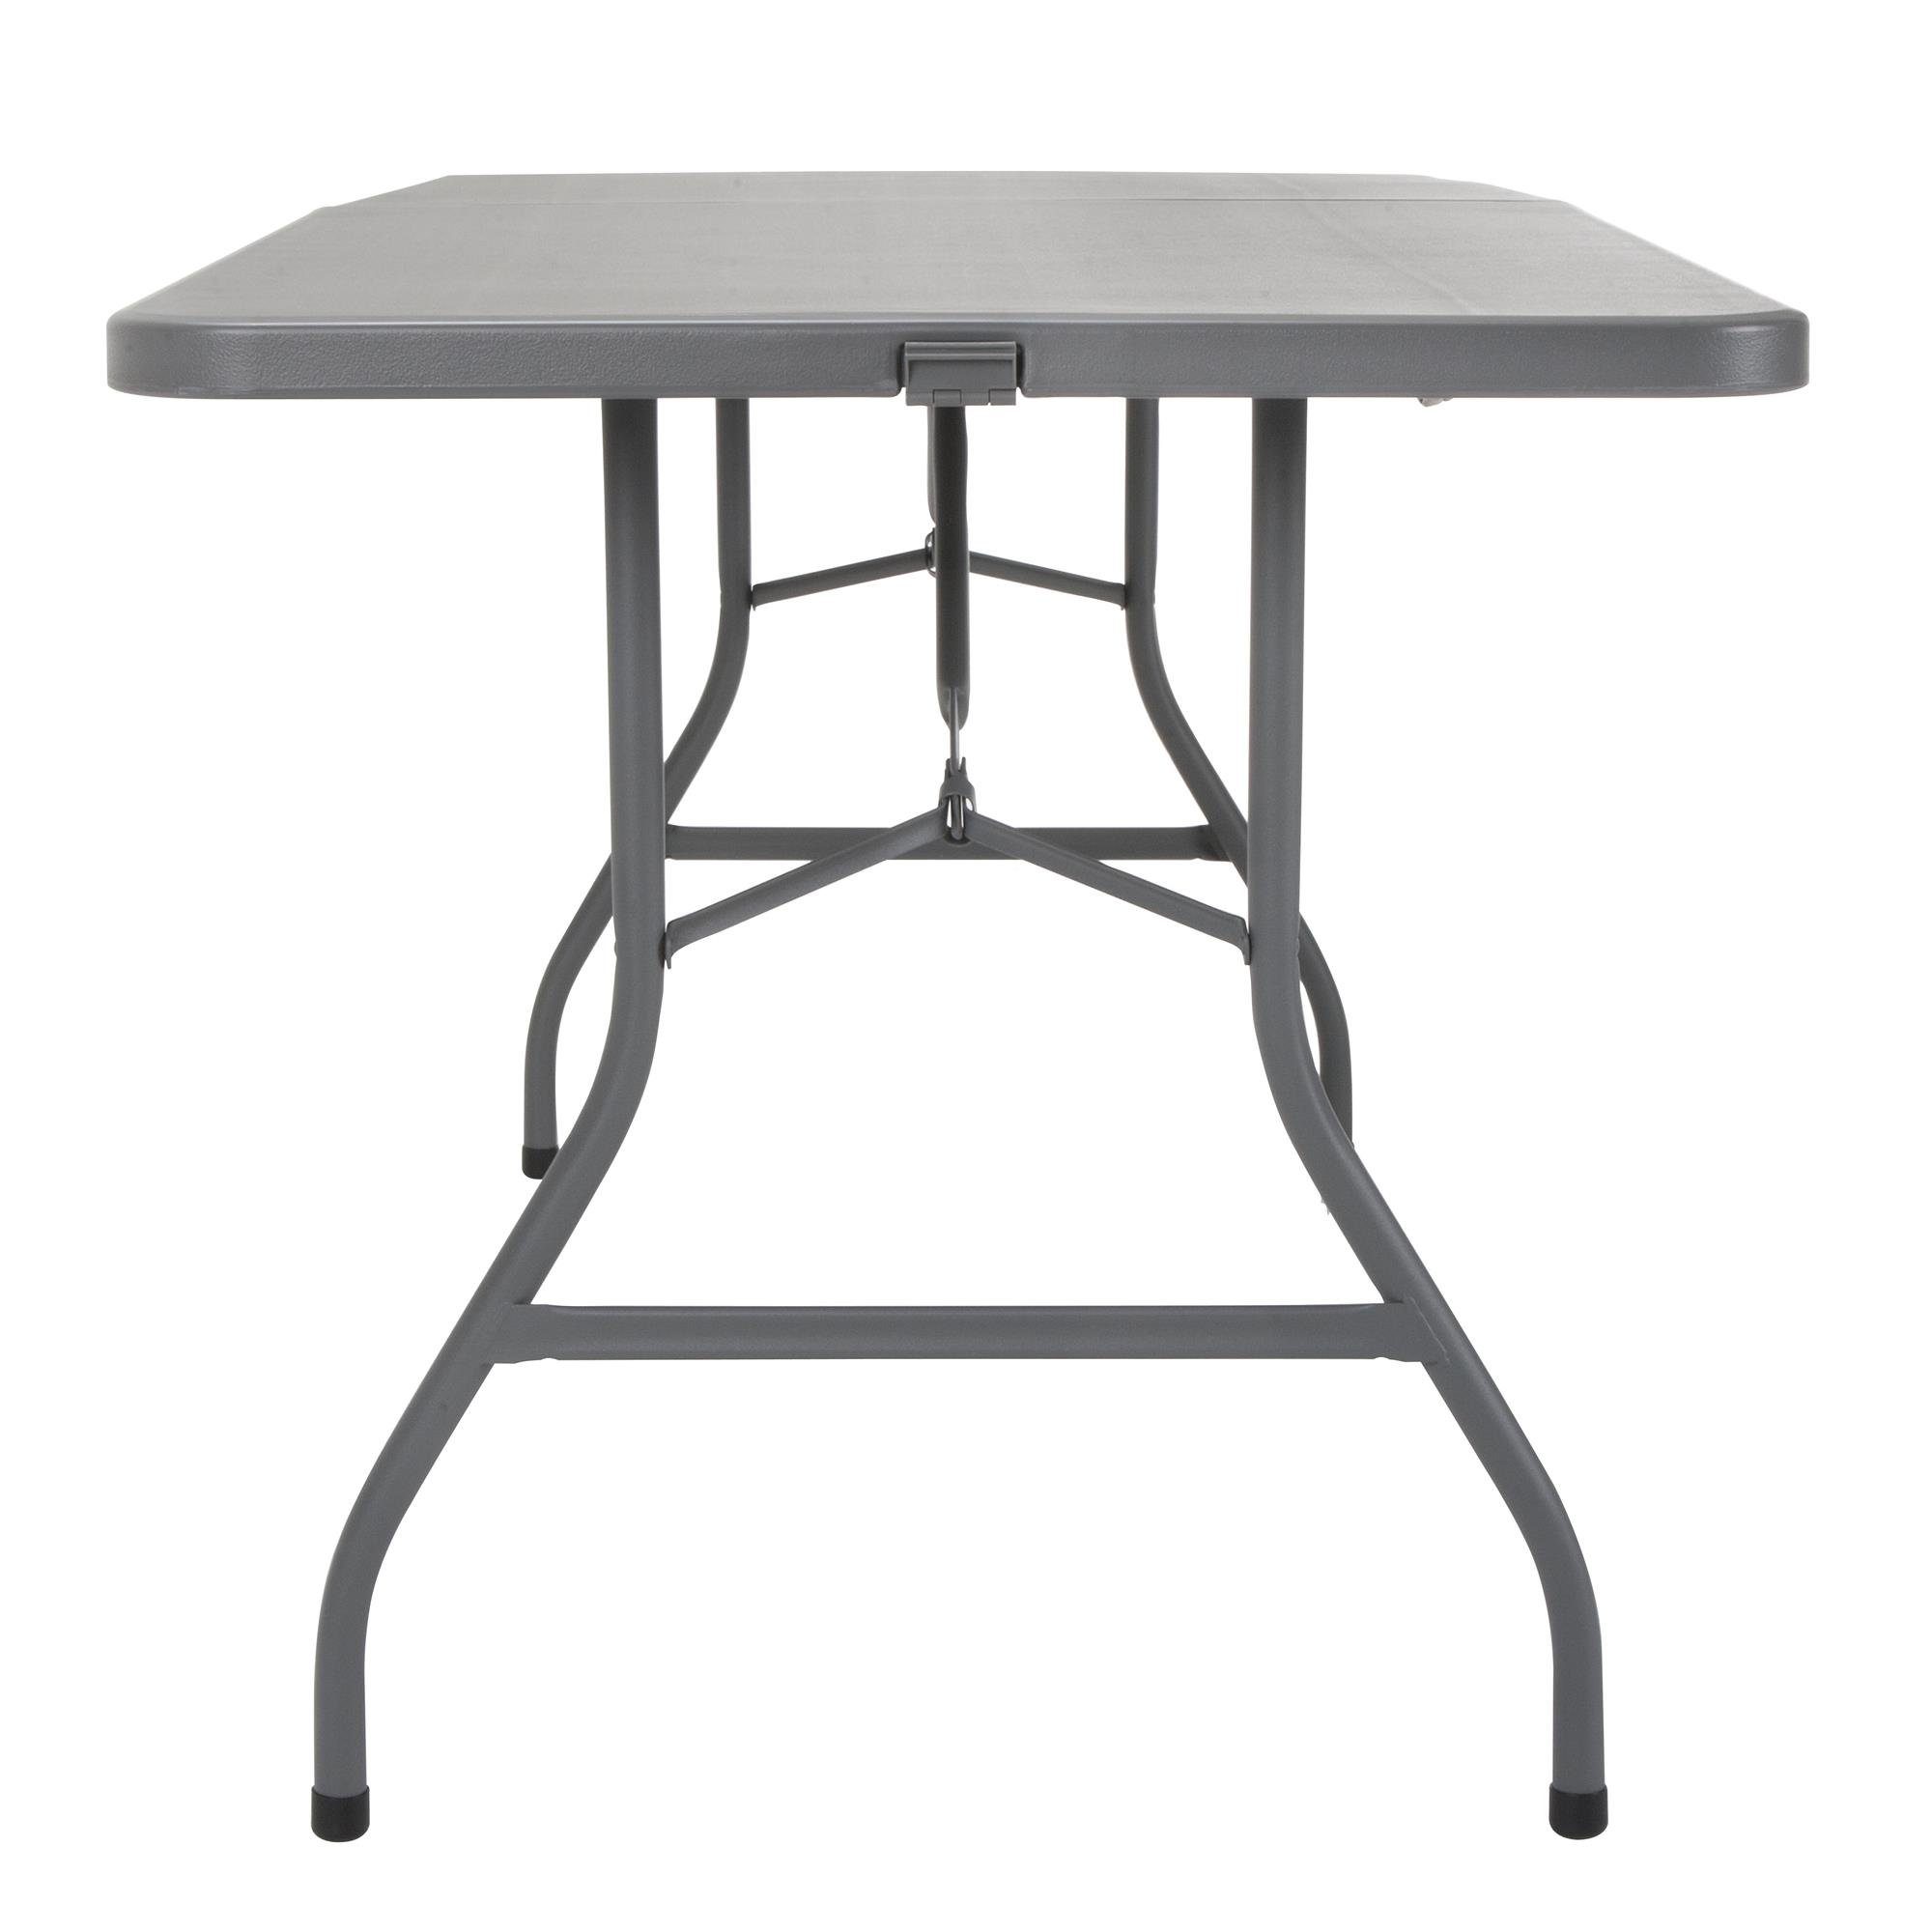 Cosco 6' Signature Series Blow Mold Centerfold Table, Gray by Cosco (Image #8)